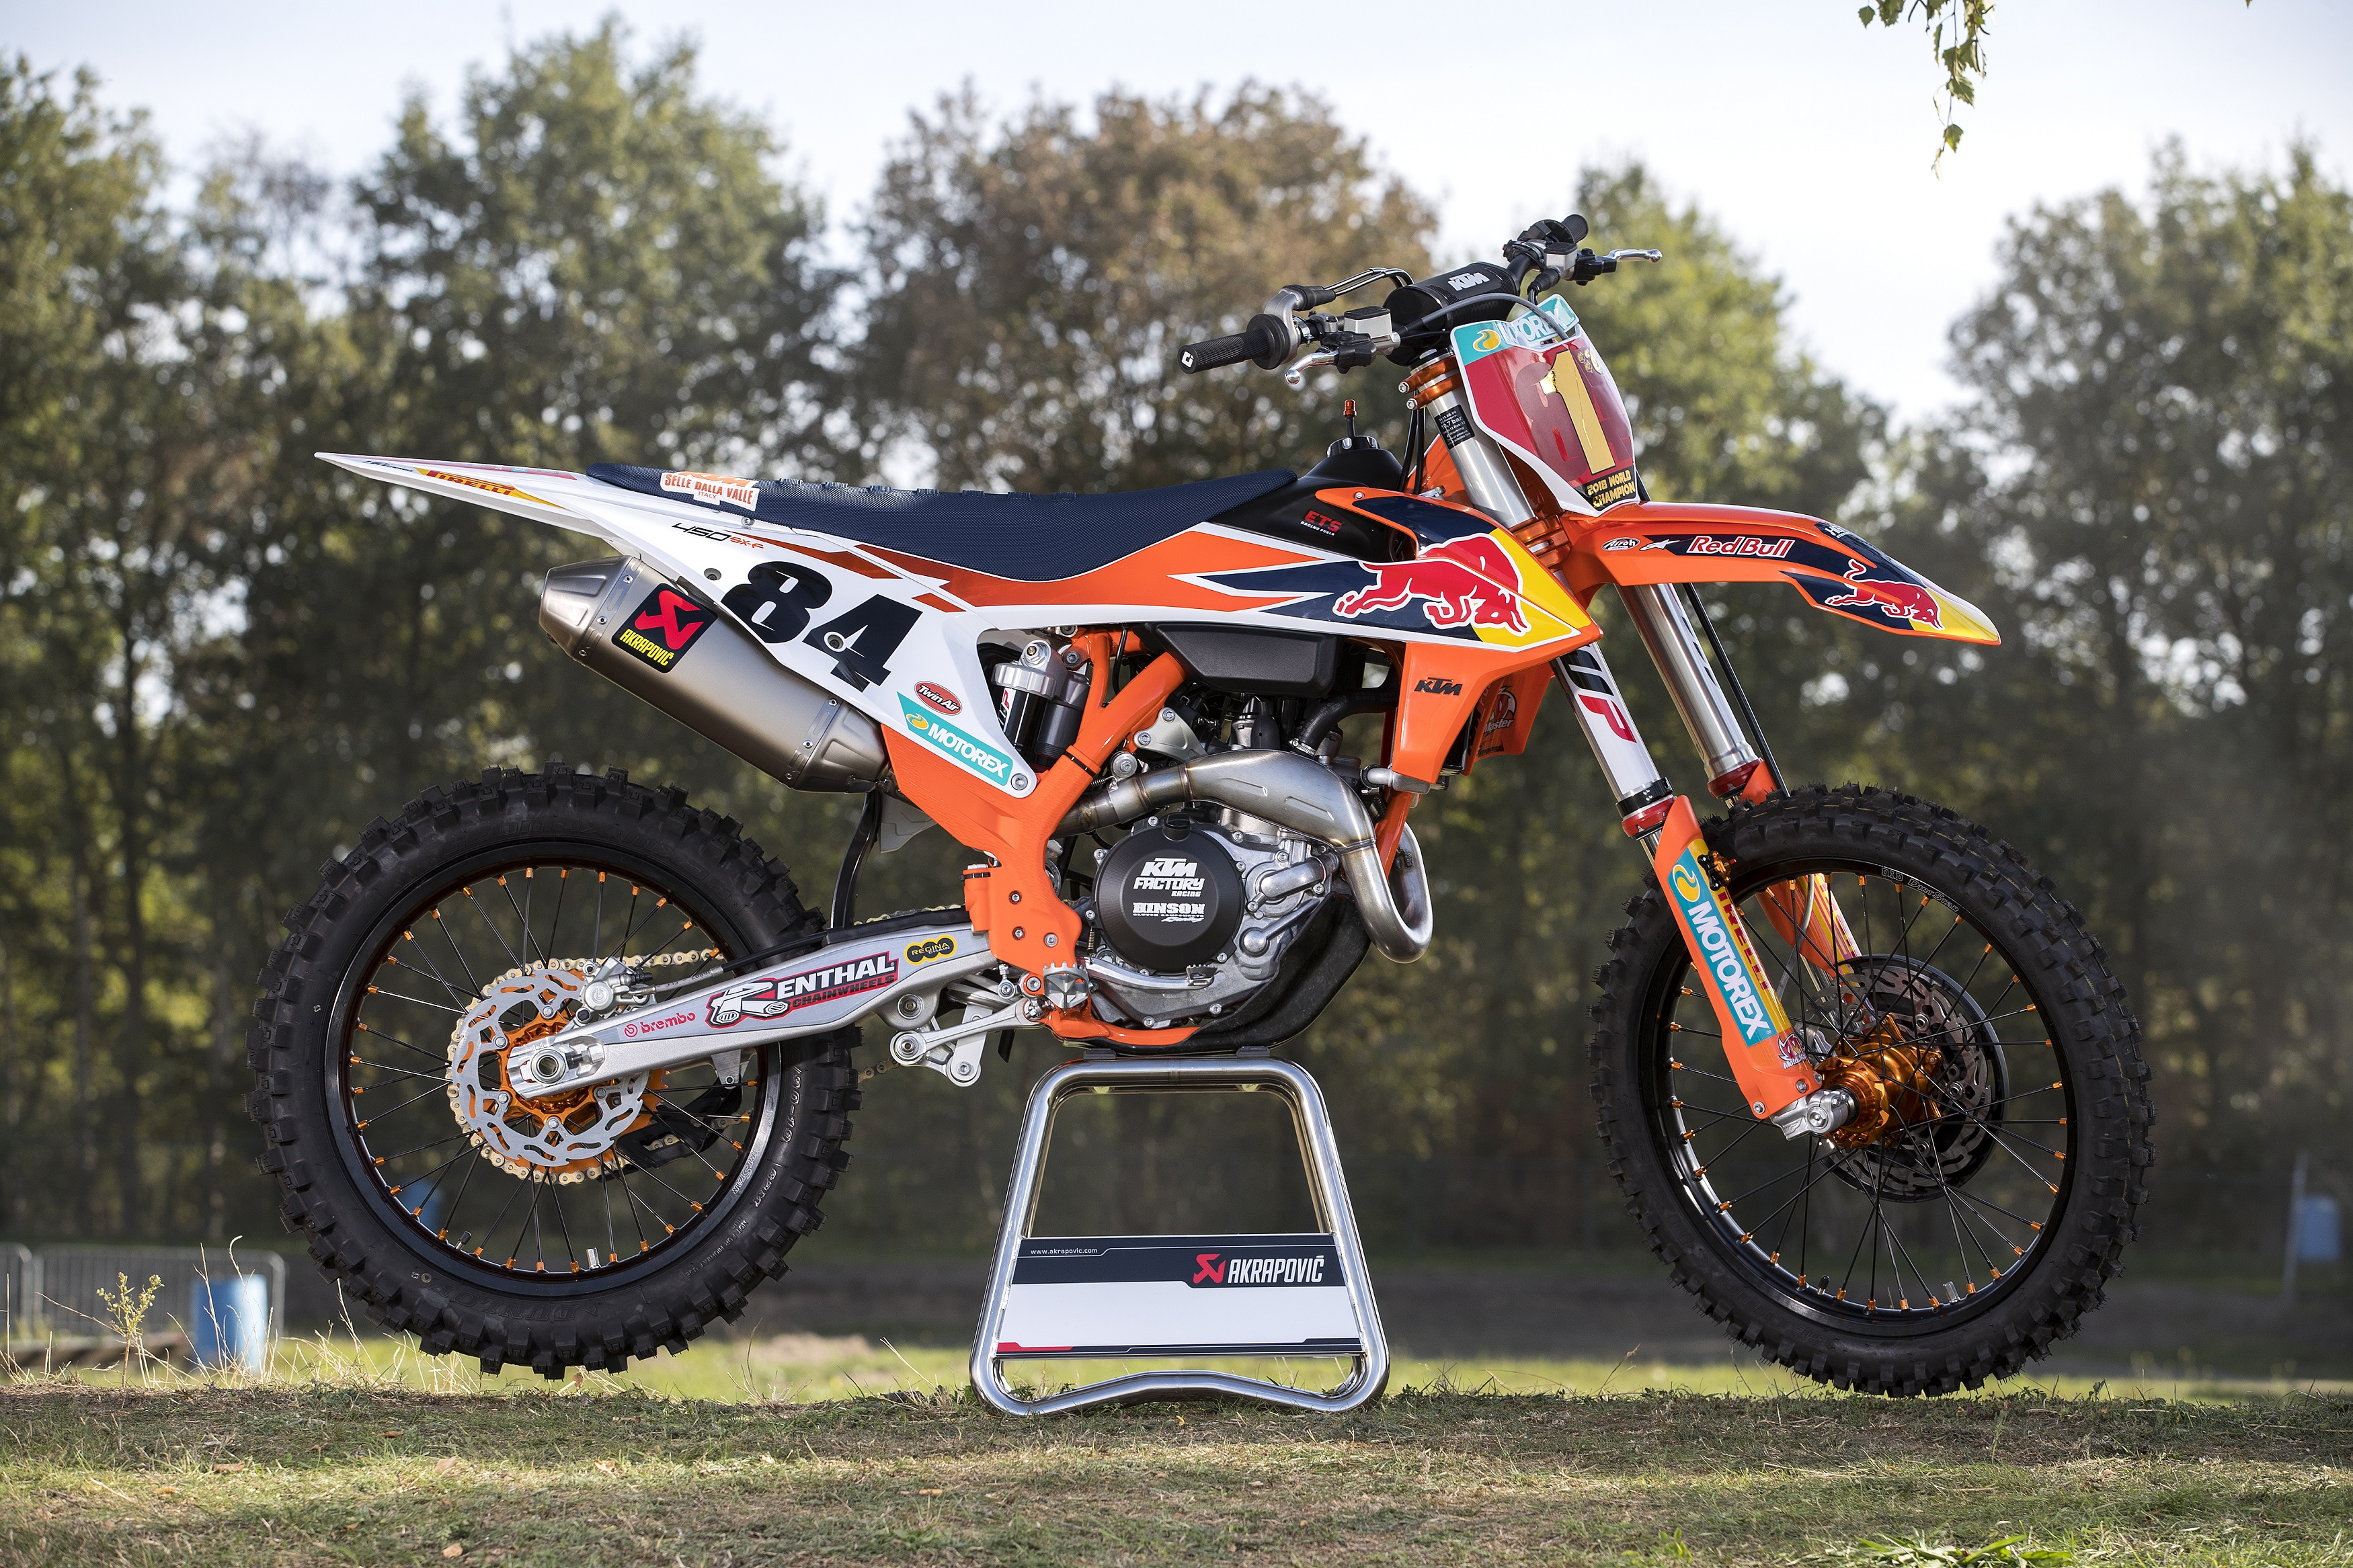 Herlings Replica